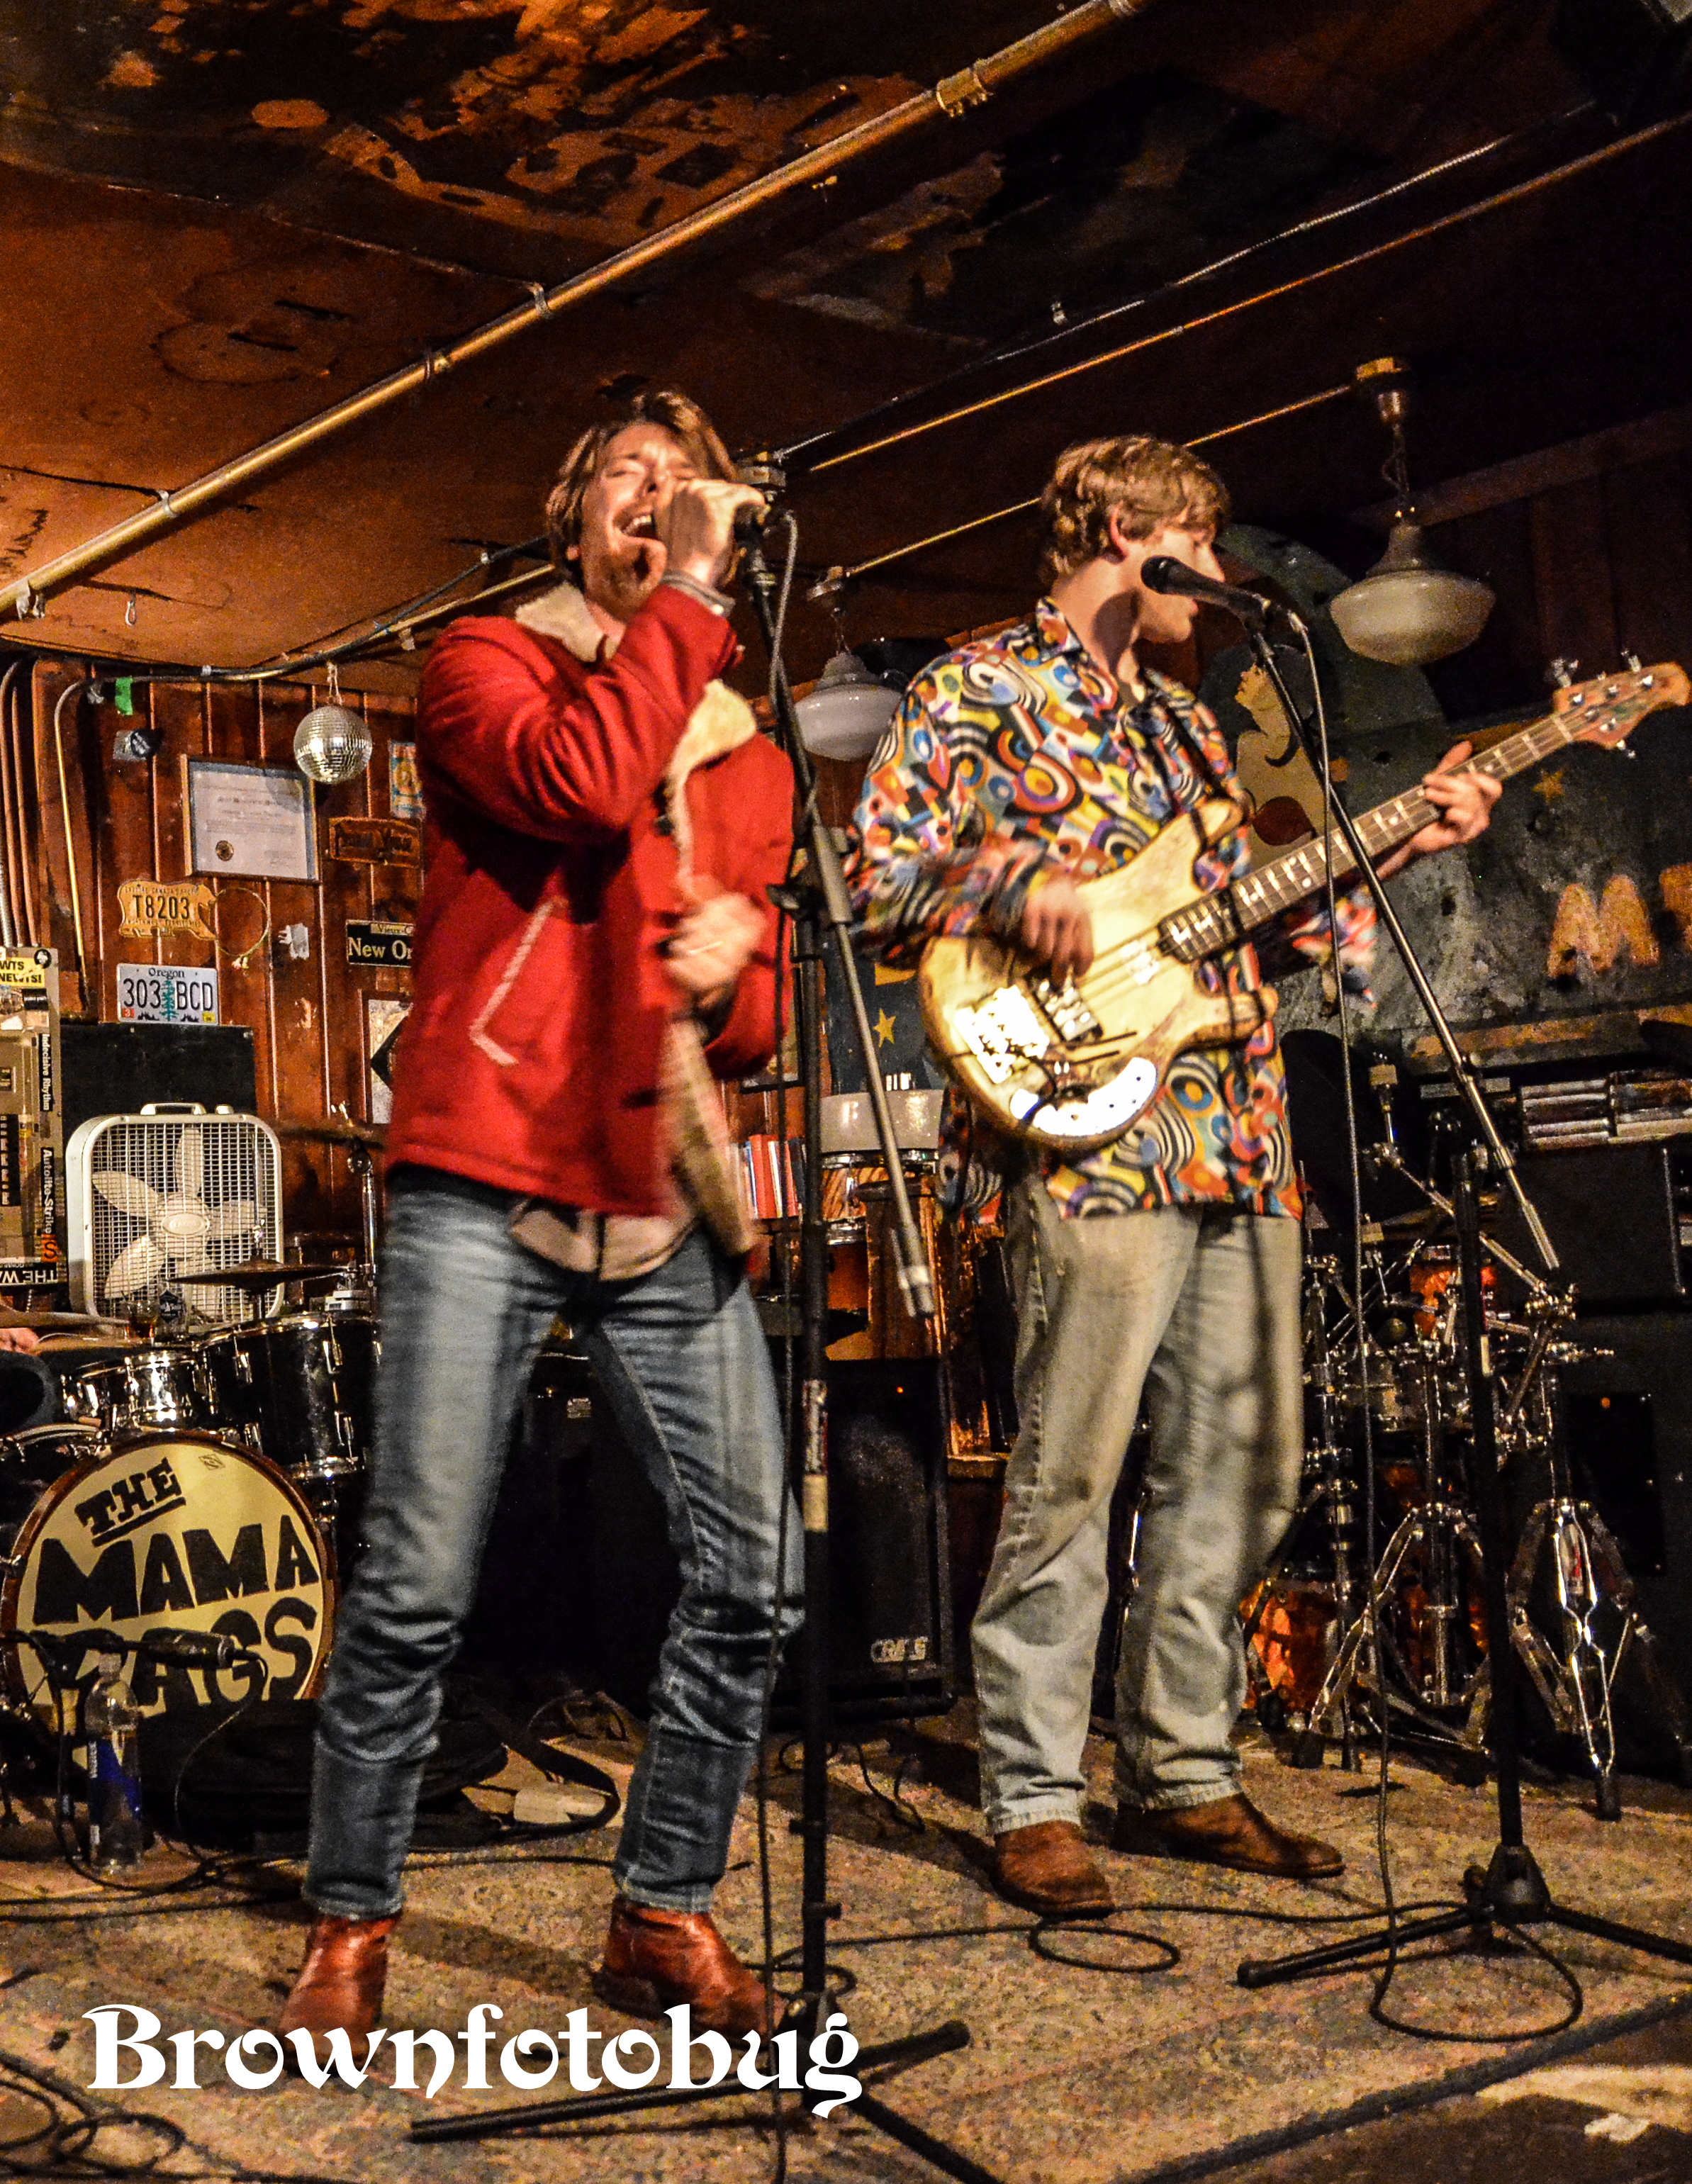 The Mama Rags Live at Blue Moon (Photo by Arlene Brown)